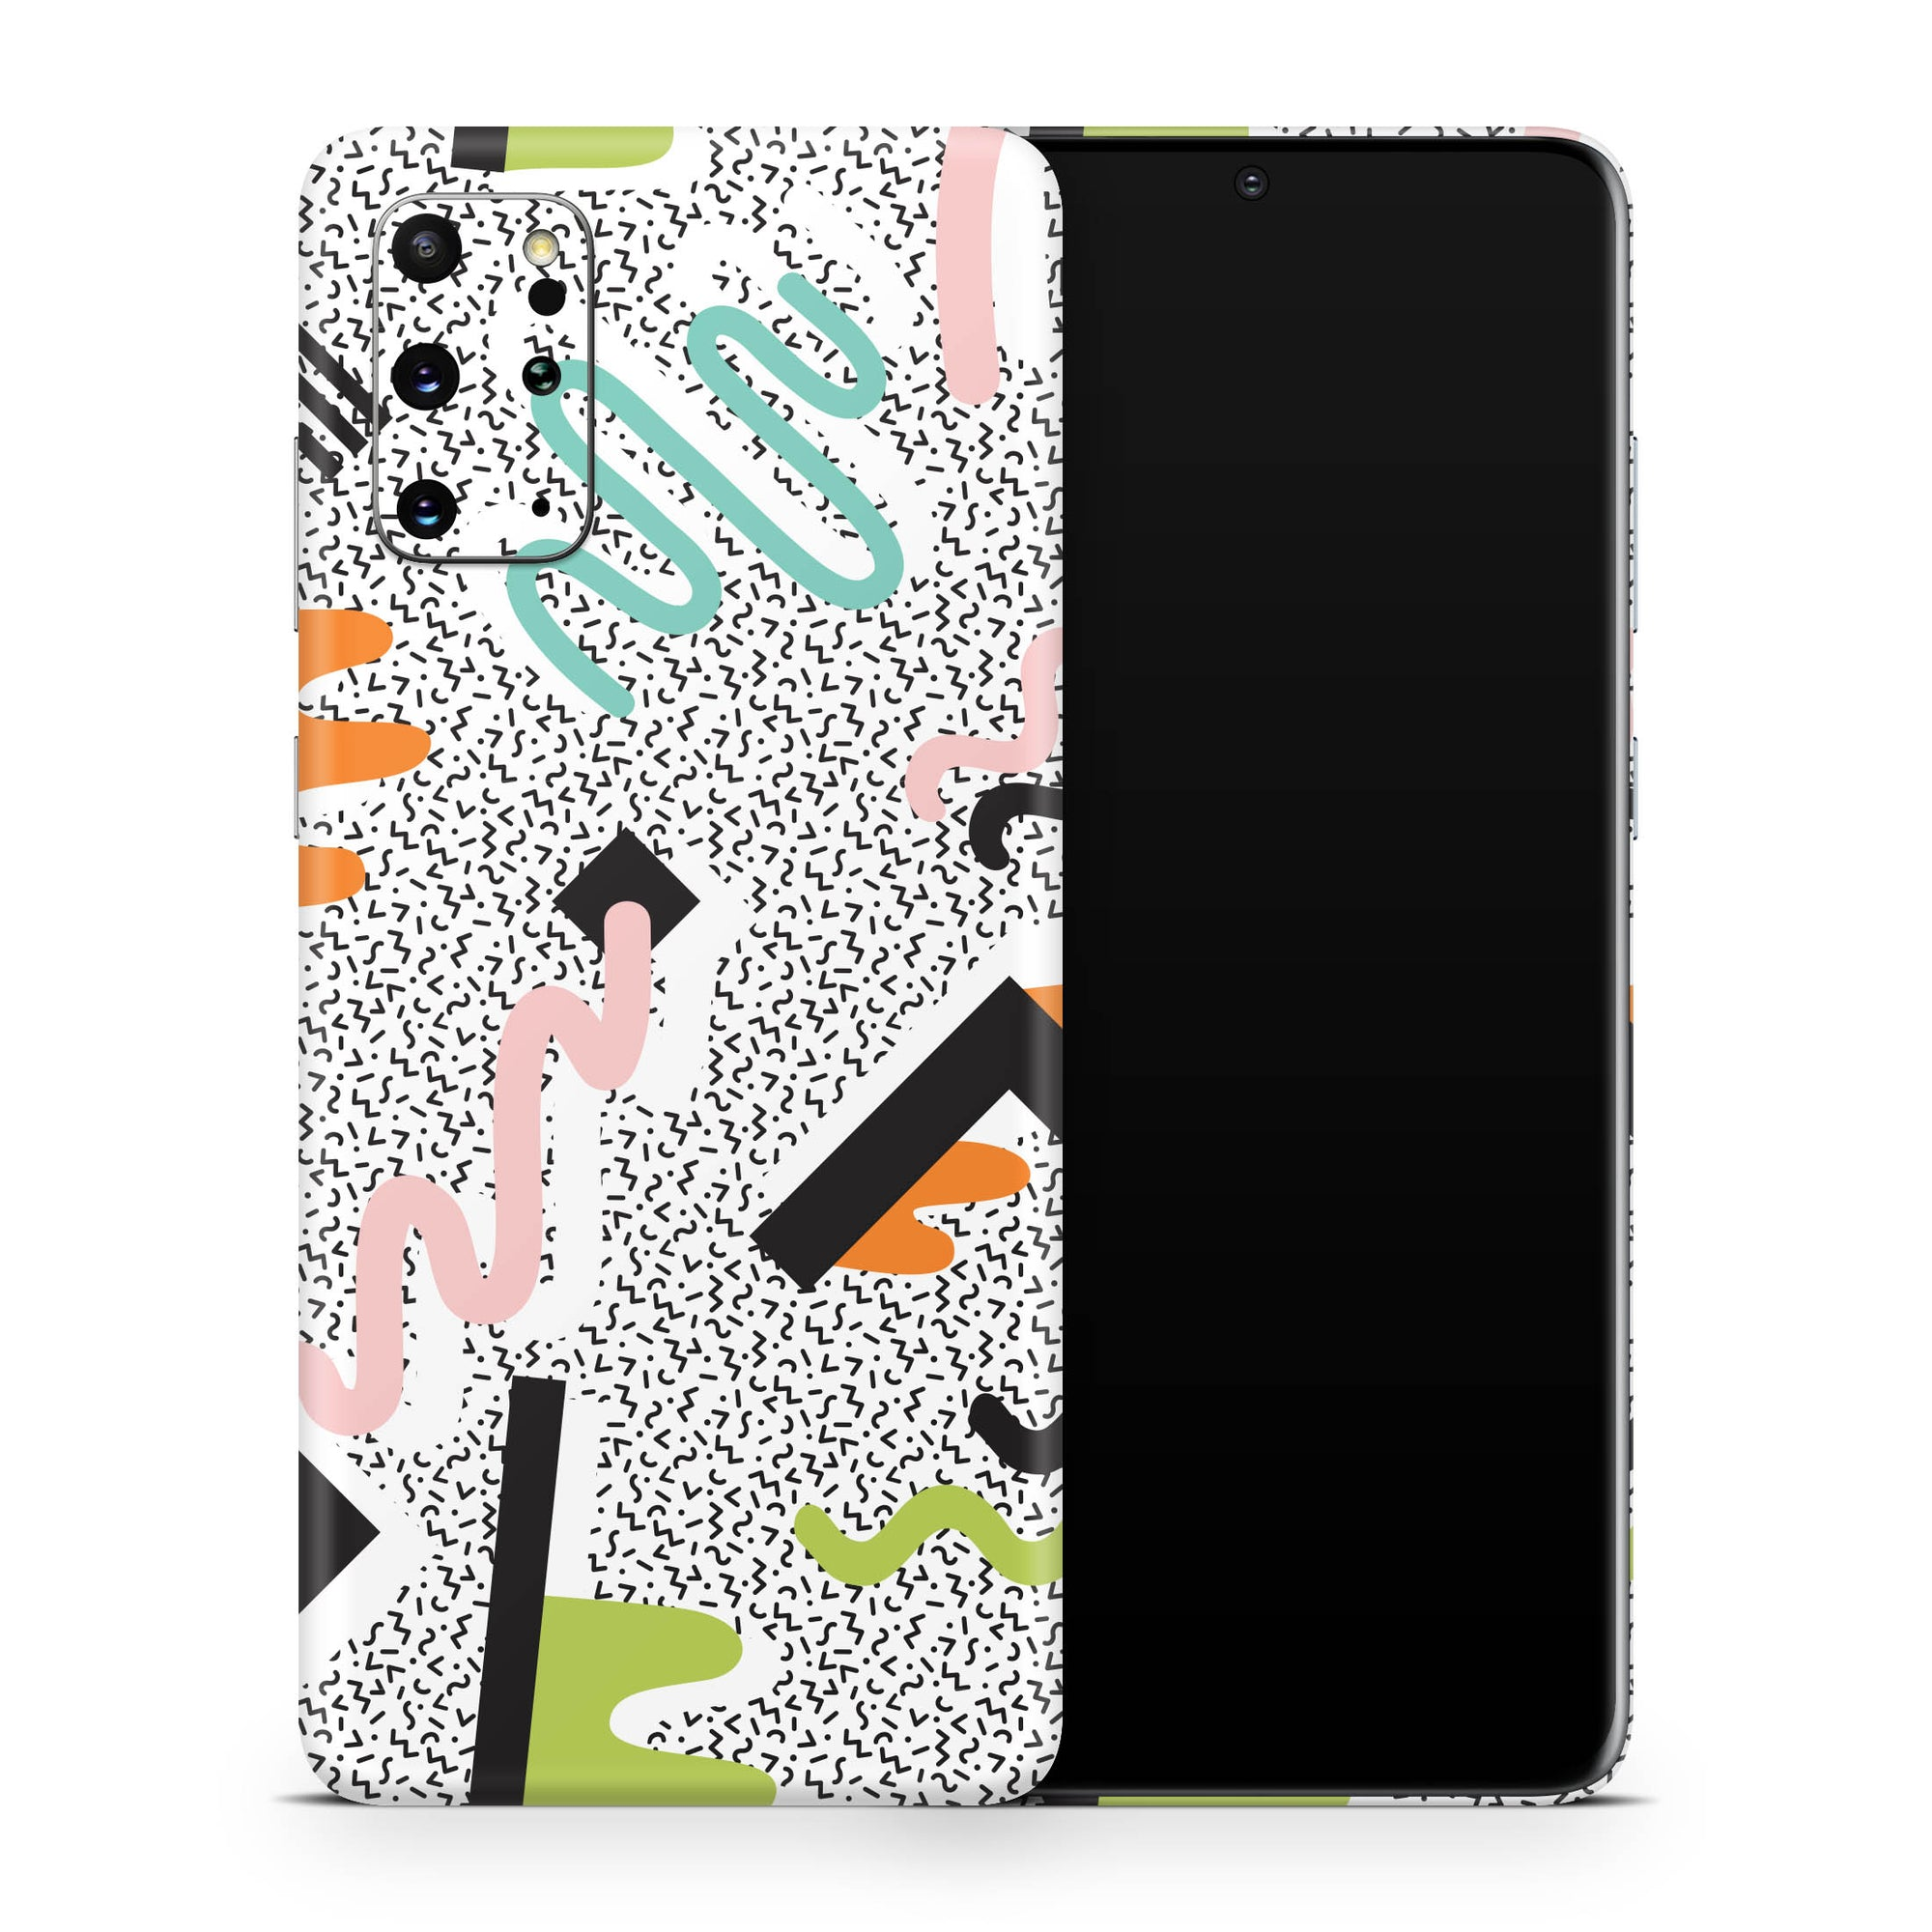 True Memphis Galaxy S20 Plus Skin + Case-Uniqfind